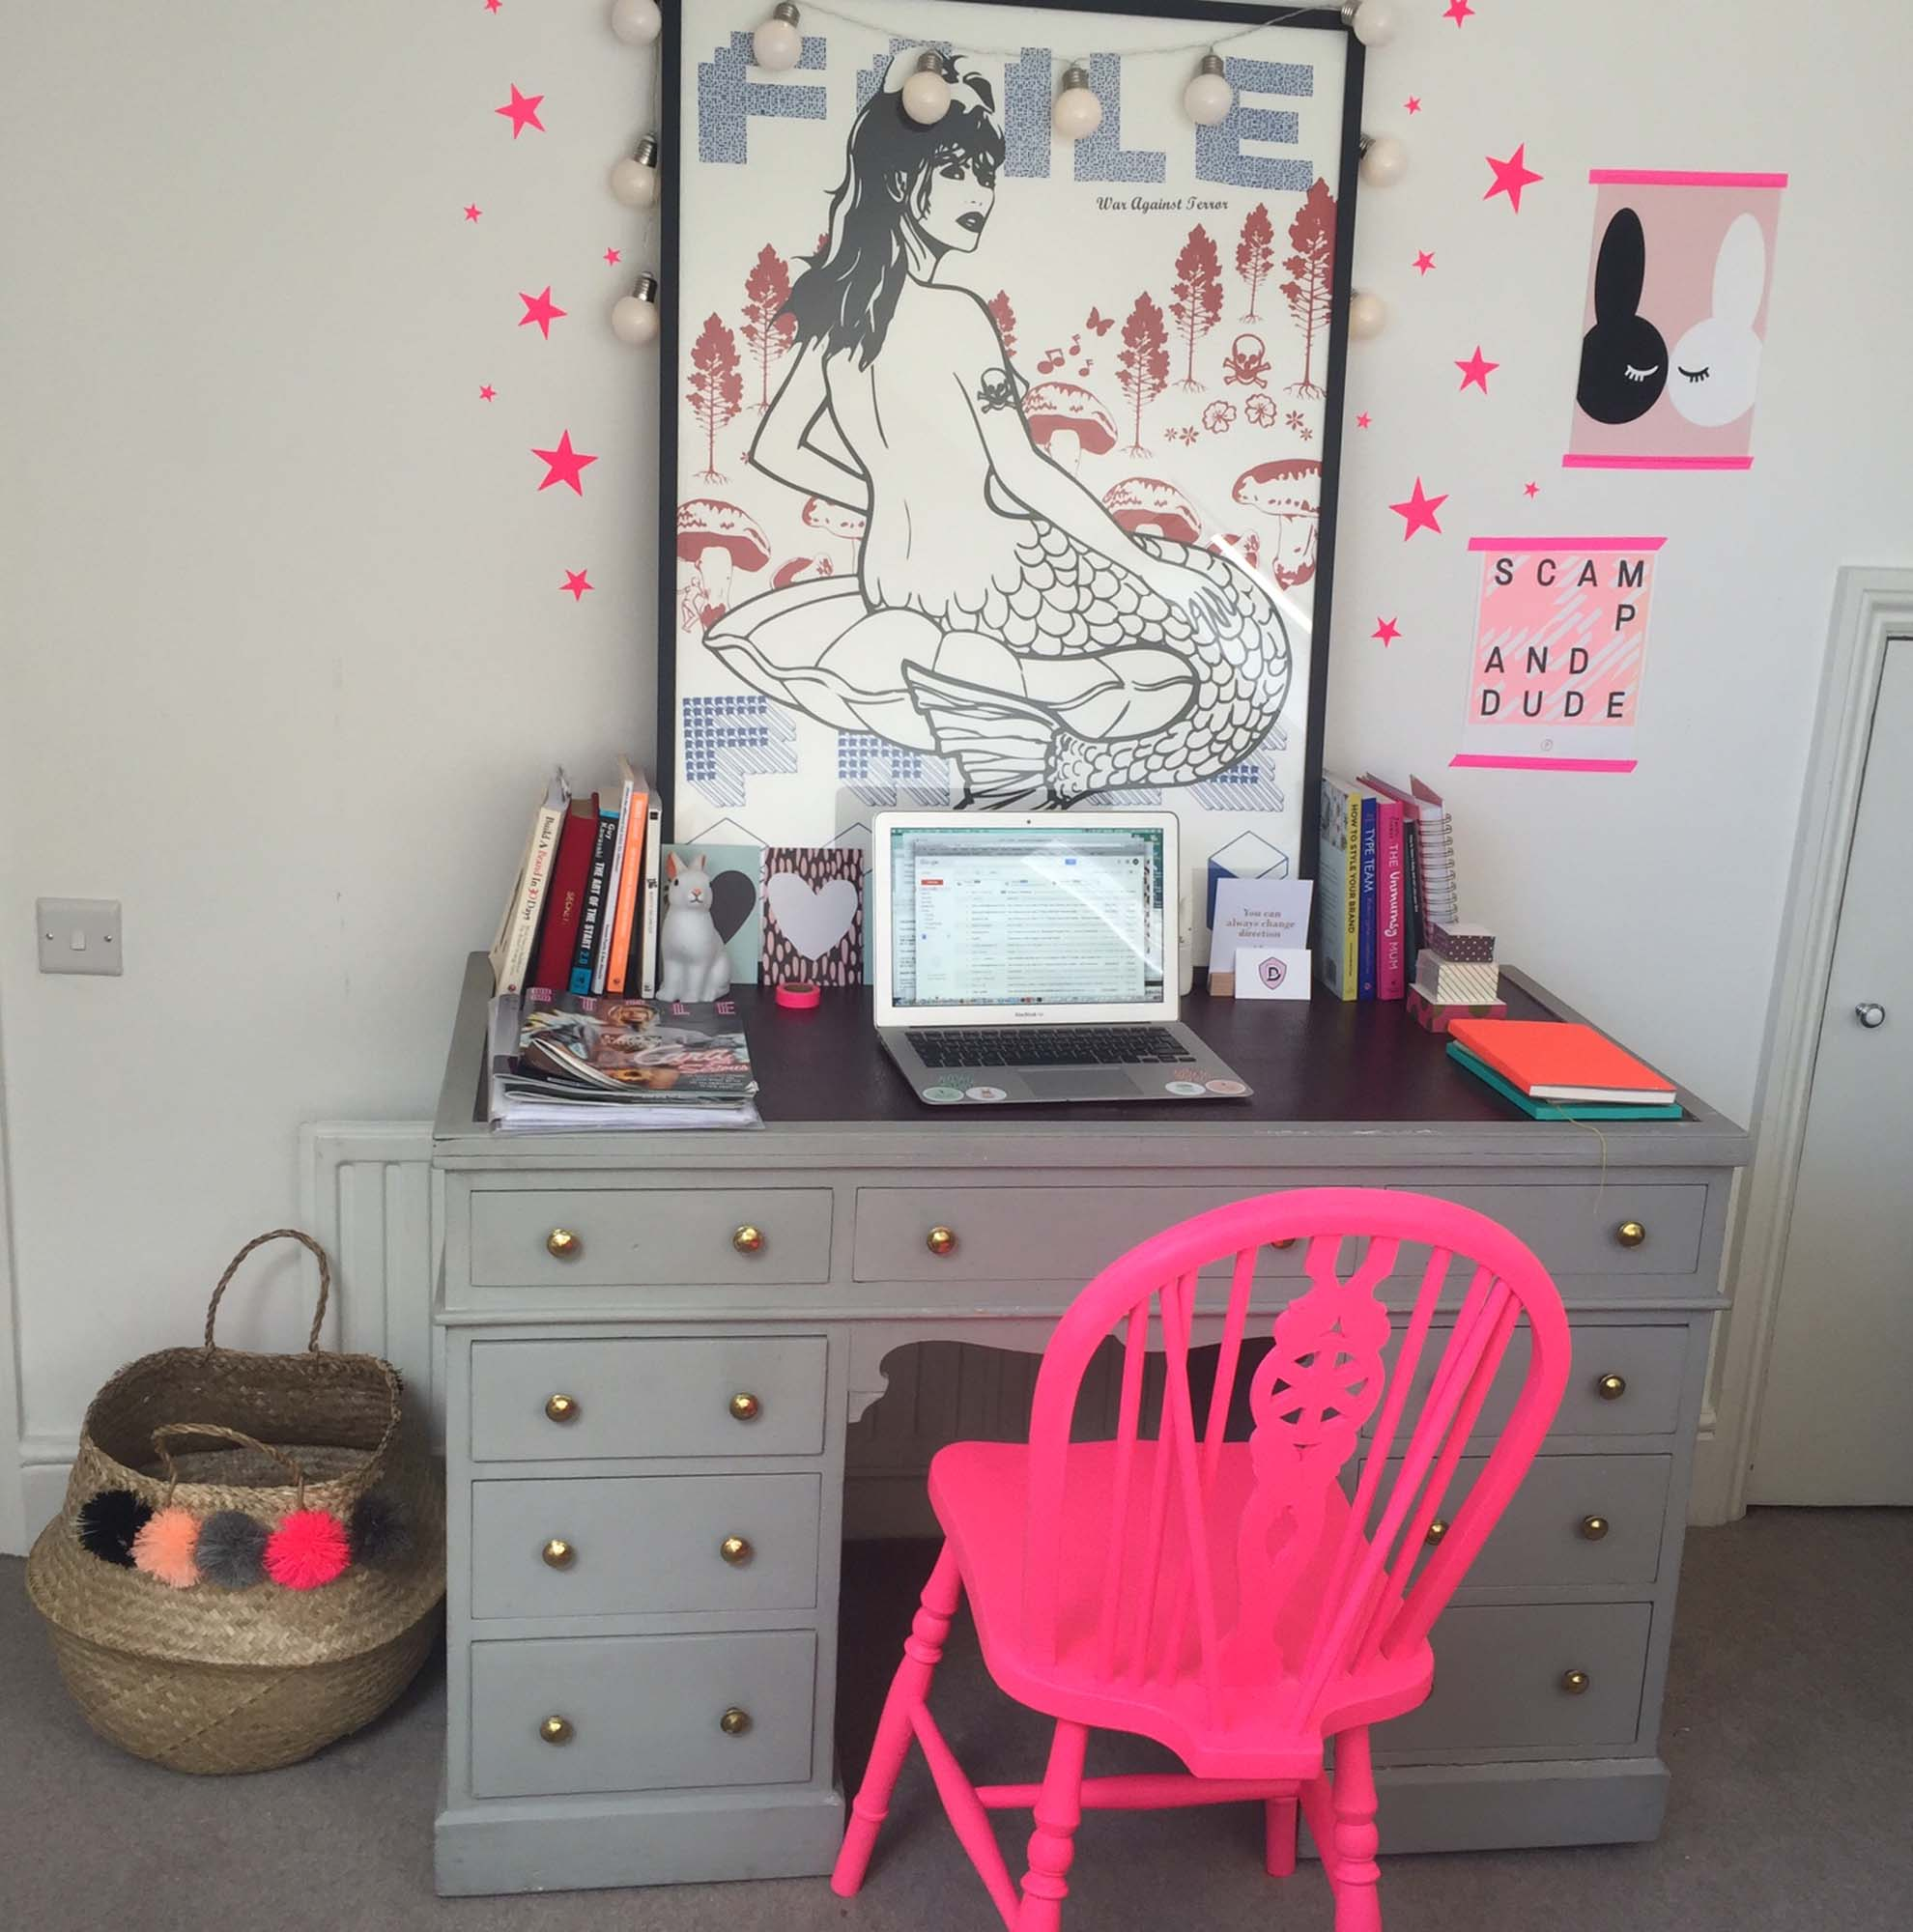 neon pink chair leather eames me my roomwreckers jo tutchener sharp scamp dude the house s office nbsp with